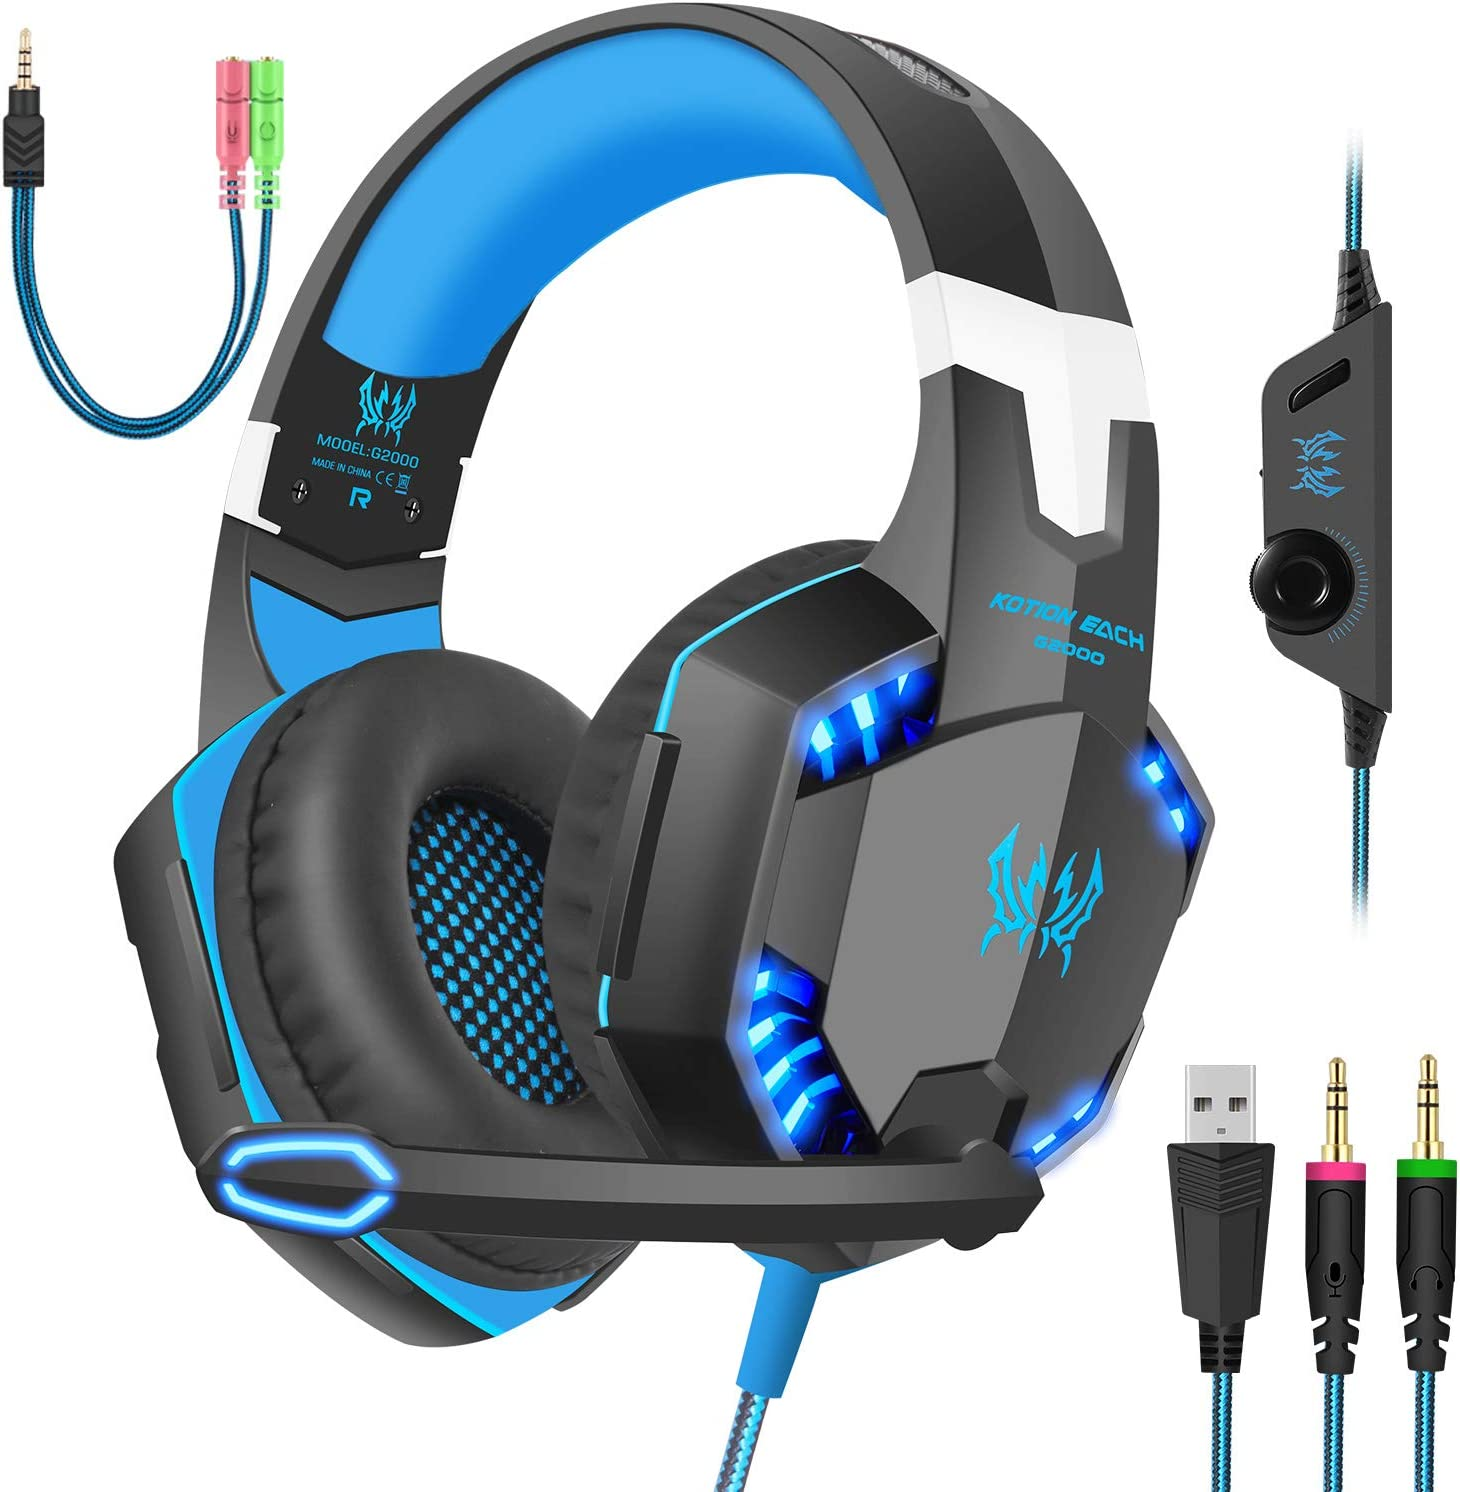 Amazon Com Gaming Headset With Mic For Pc Ps4 Xbox One Over Ear Headphones With Volume Control Led Light Cool Style Stereo Noise Reduction For Laptops Smartphone Computer Black Blue Computers Accessories